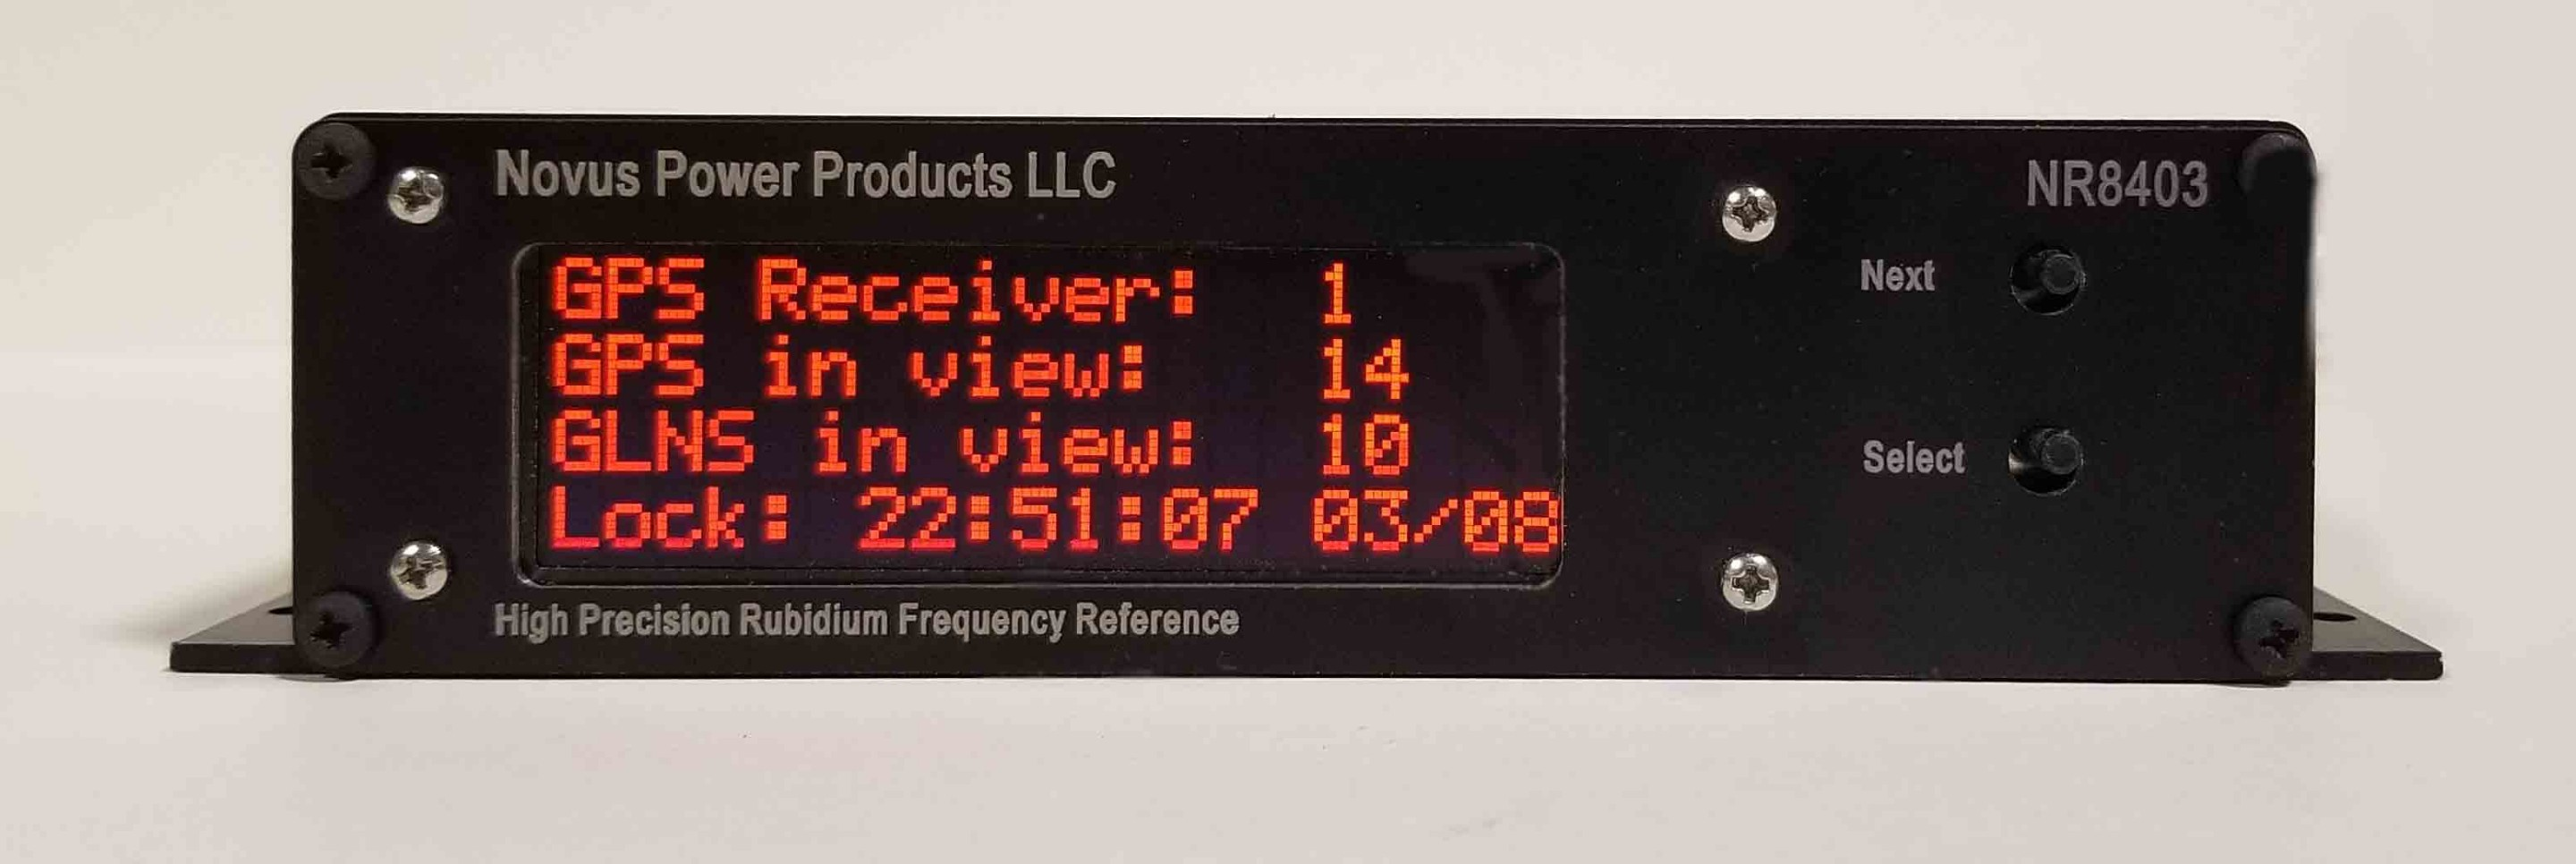 Three Channel Low Noise Rubidium GNSS Locked Frequency Reference-NR8403-ROG Image